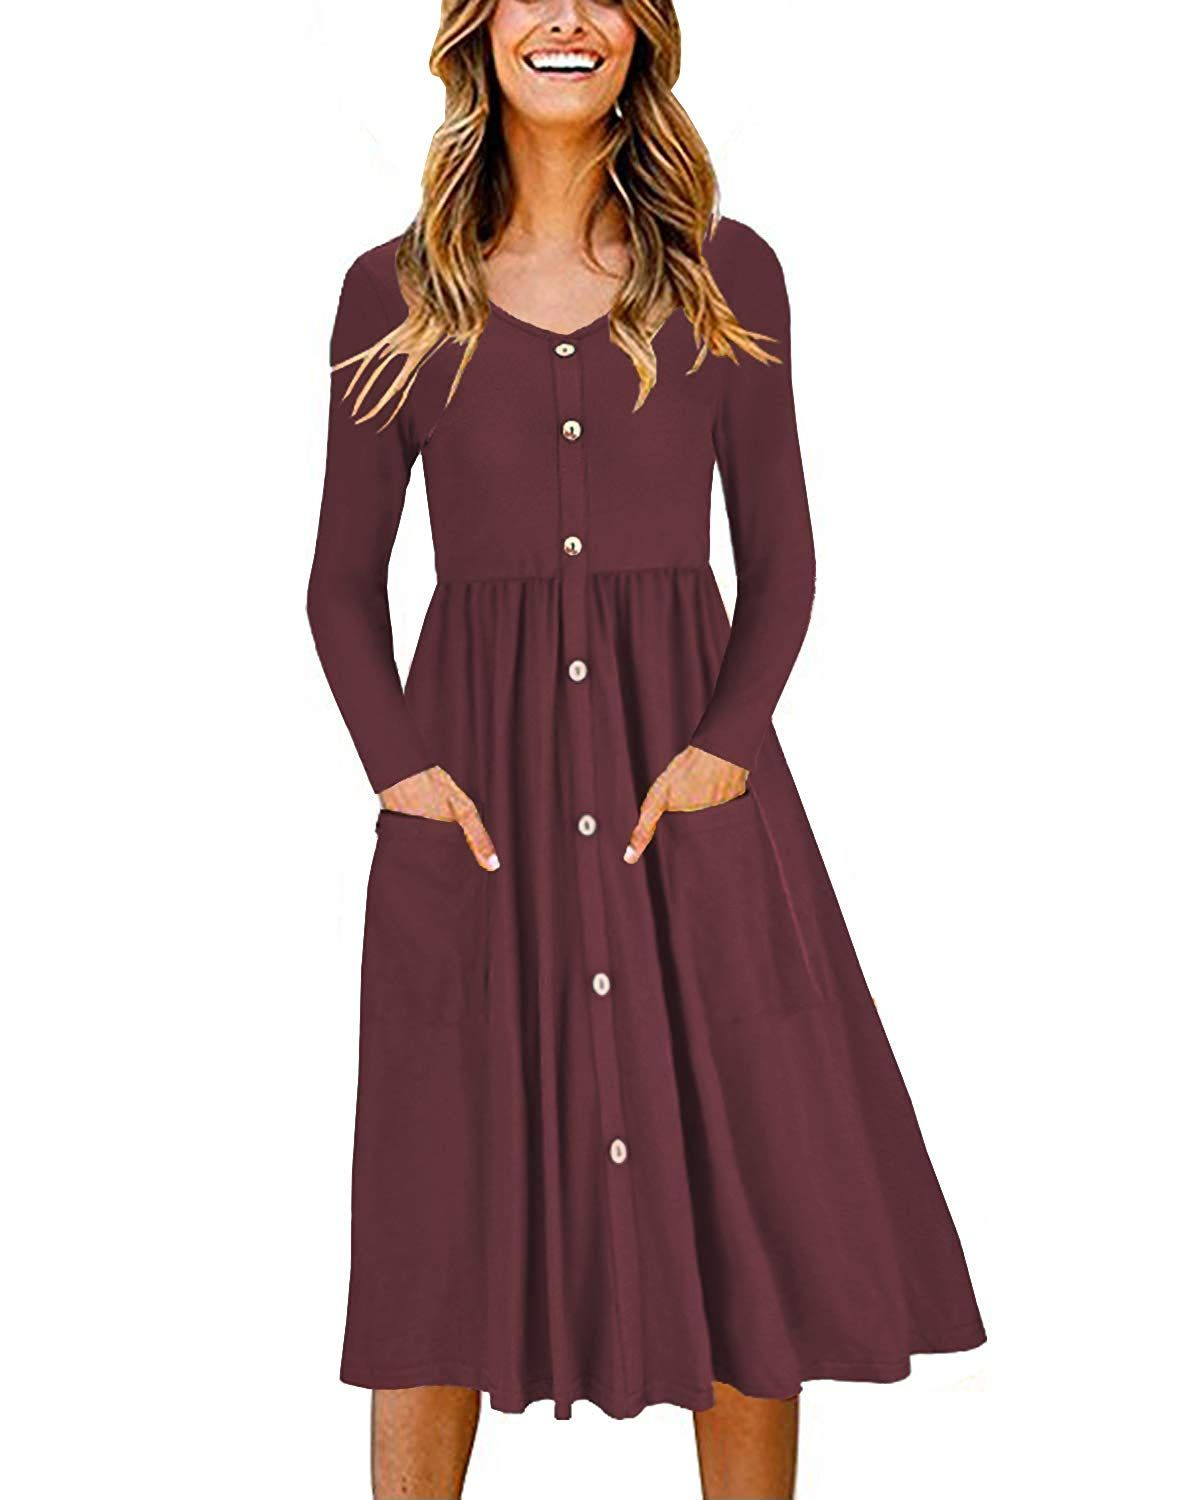 Ouges Women S Long Sleeve V Neck Button Down Skater Dress With Pockets At Amazon Women S Clothing Store Women Long Sleeve Dresses Long Sleeve Dress [ 1500 x 1200 Pixel ]